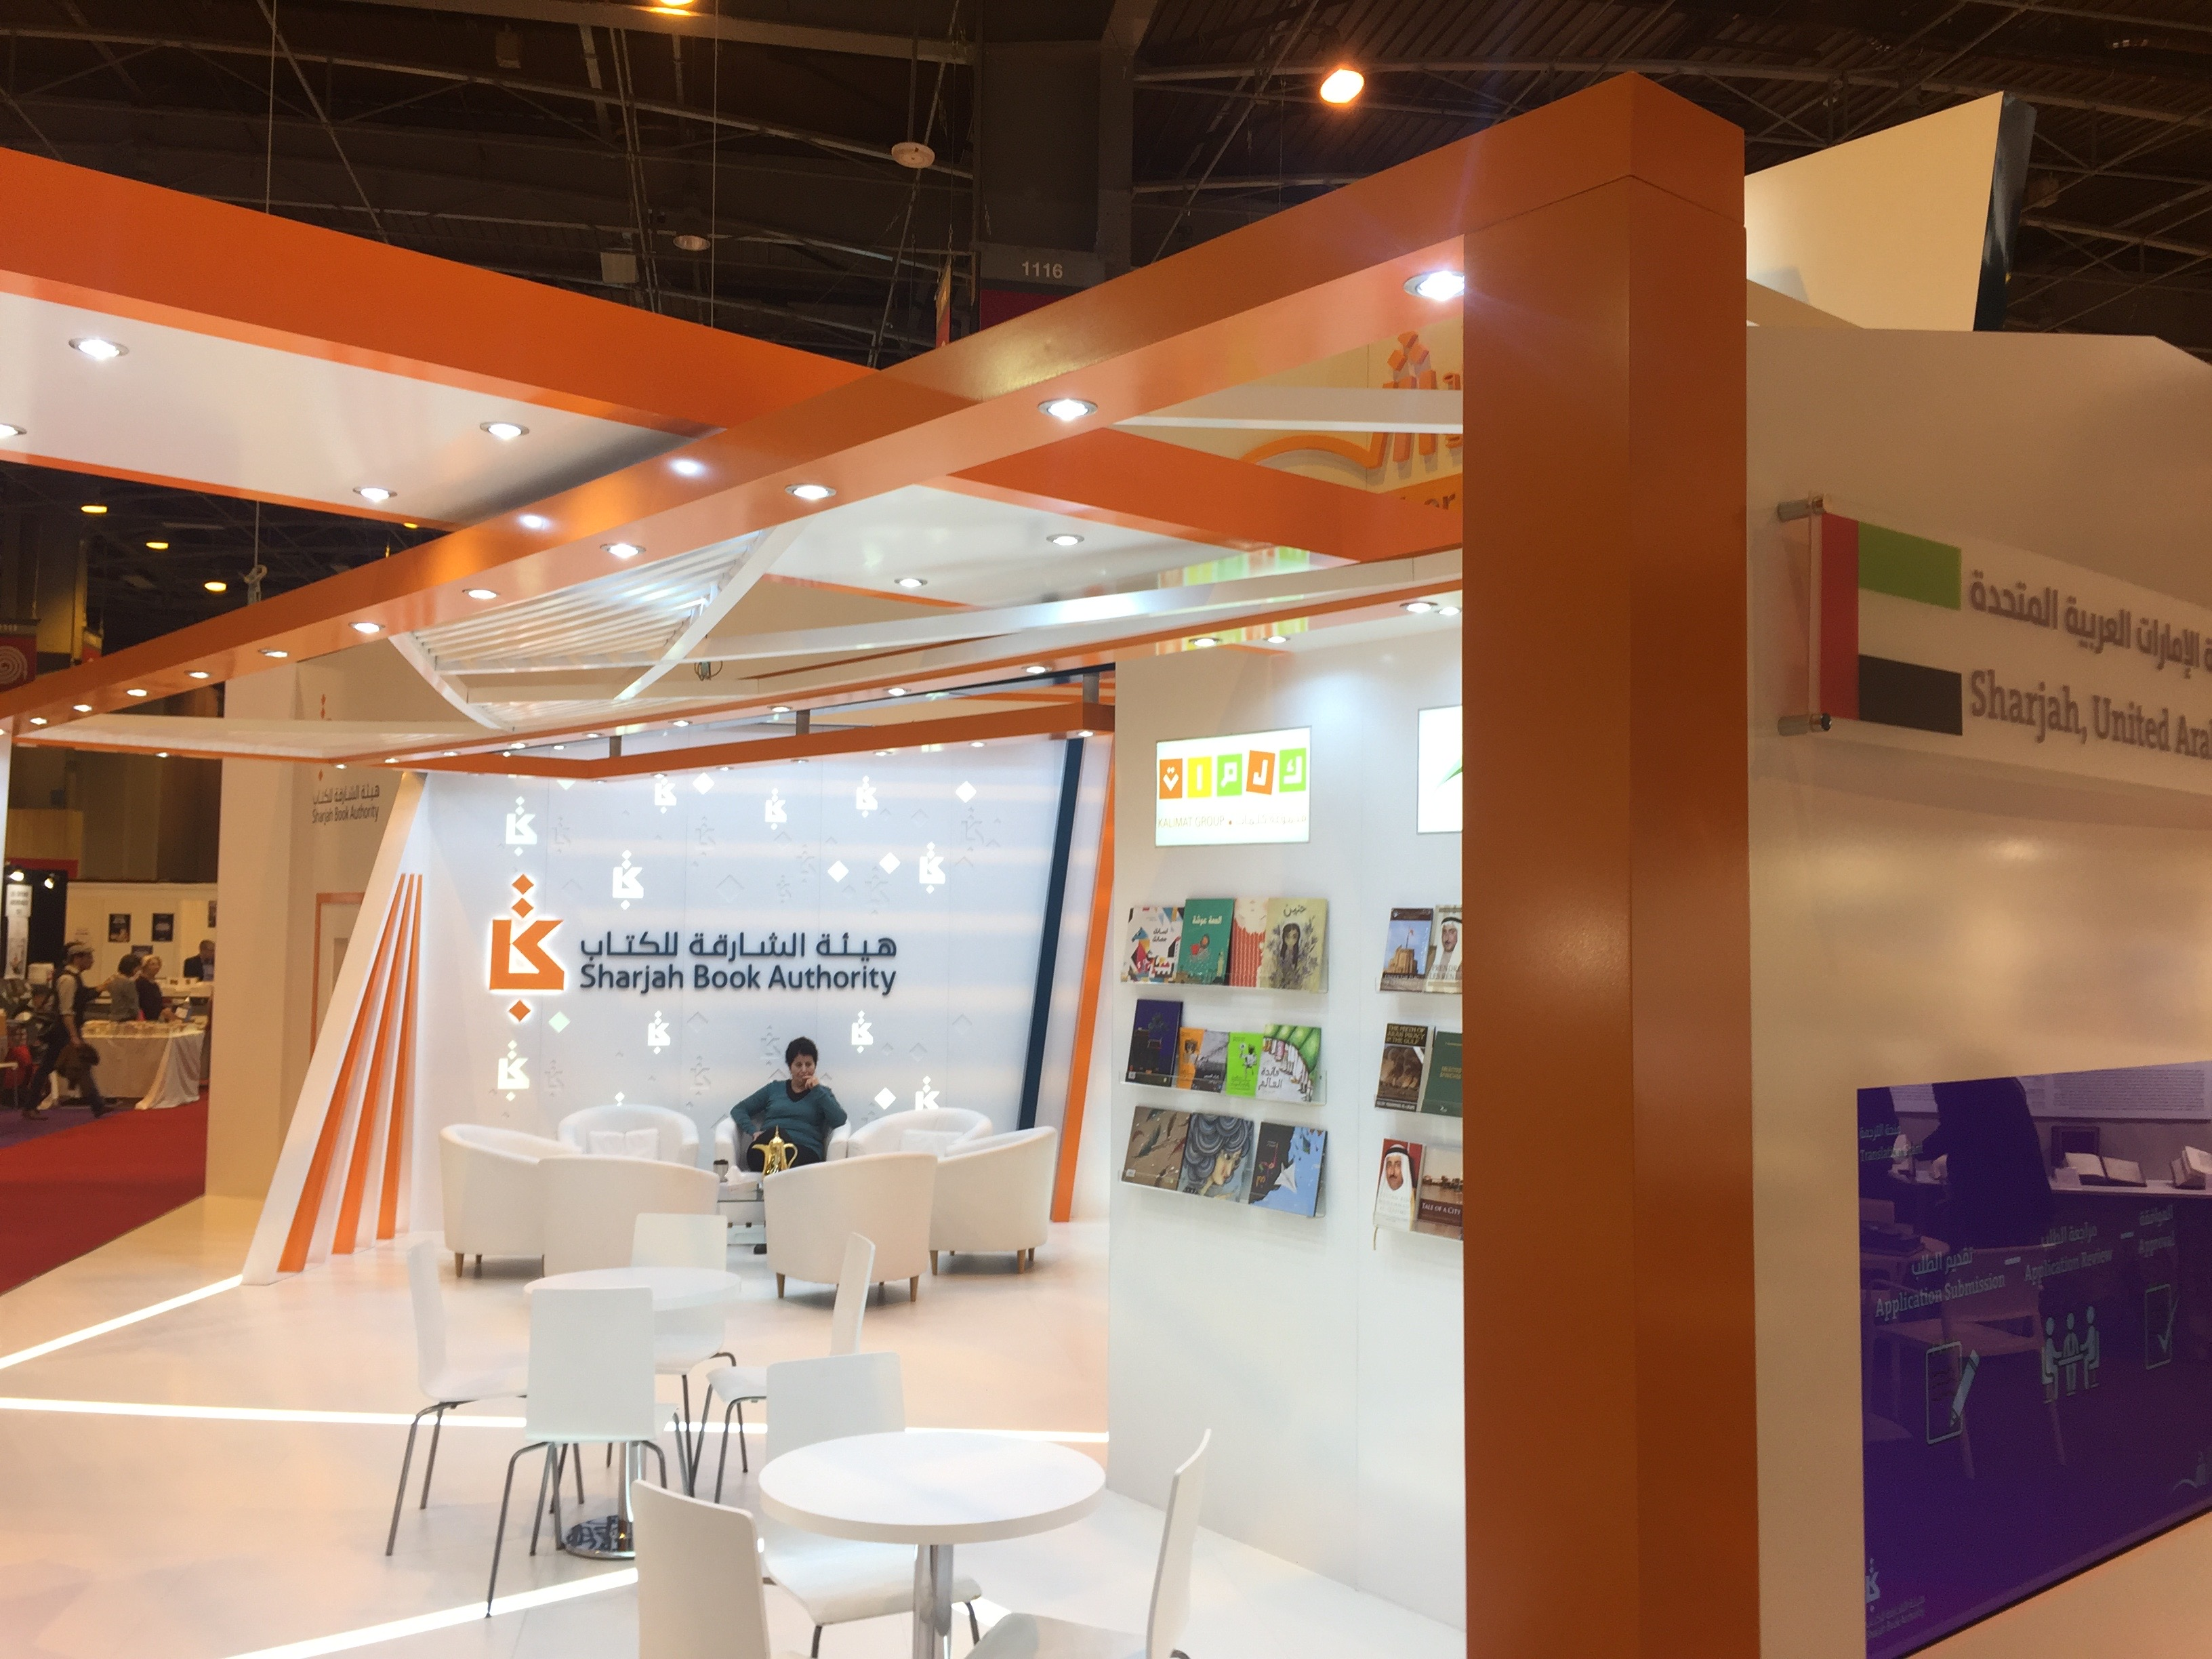 File pavillon sharjah uae au salon du livre de paris 2017 wikimedia commons - Salon du livre 2017 paris ...